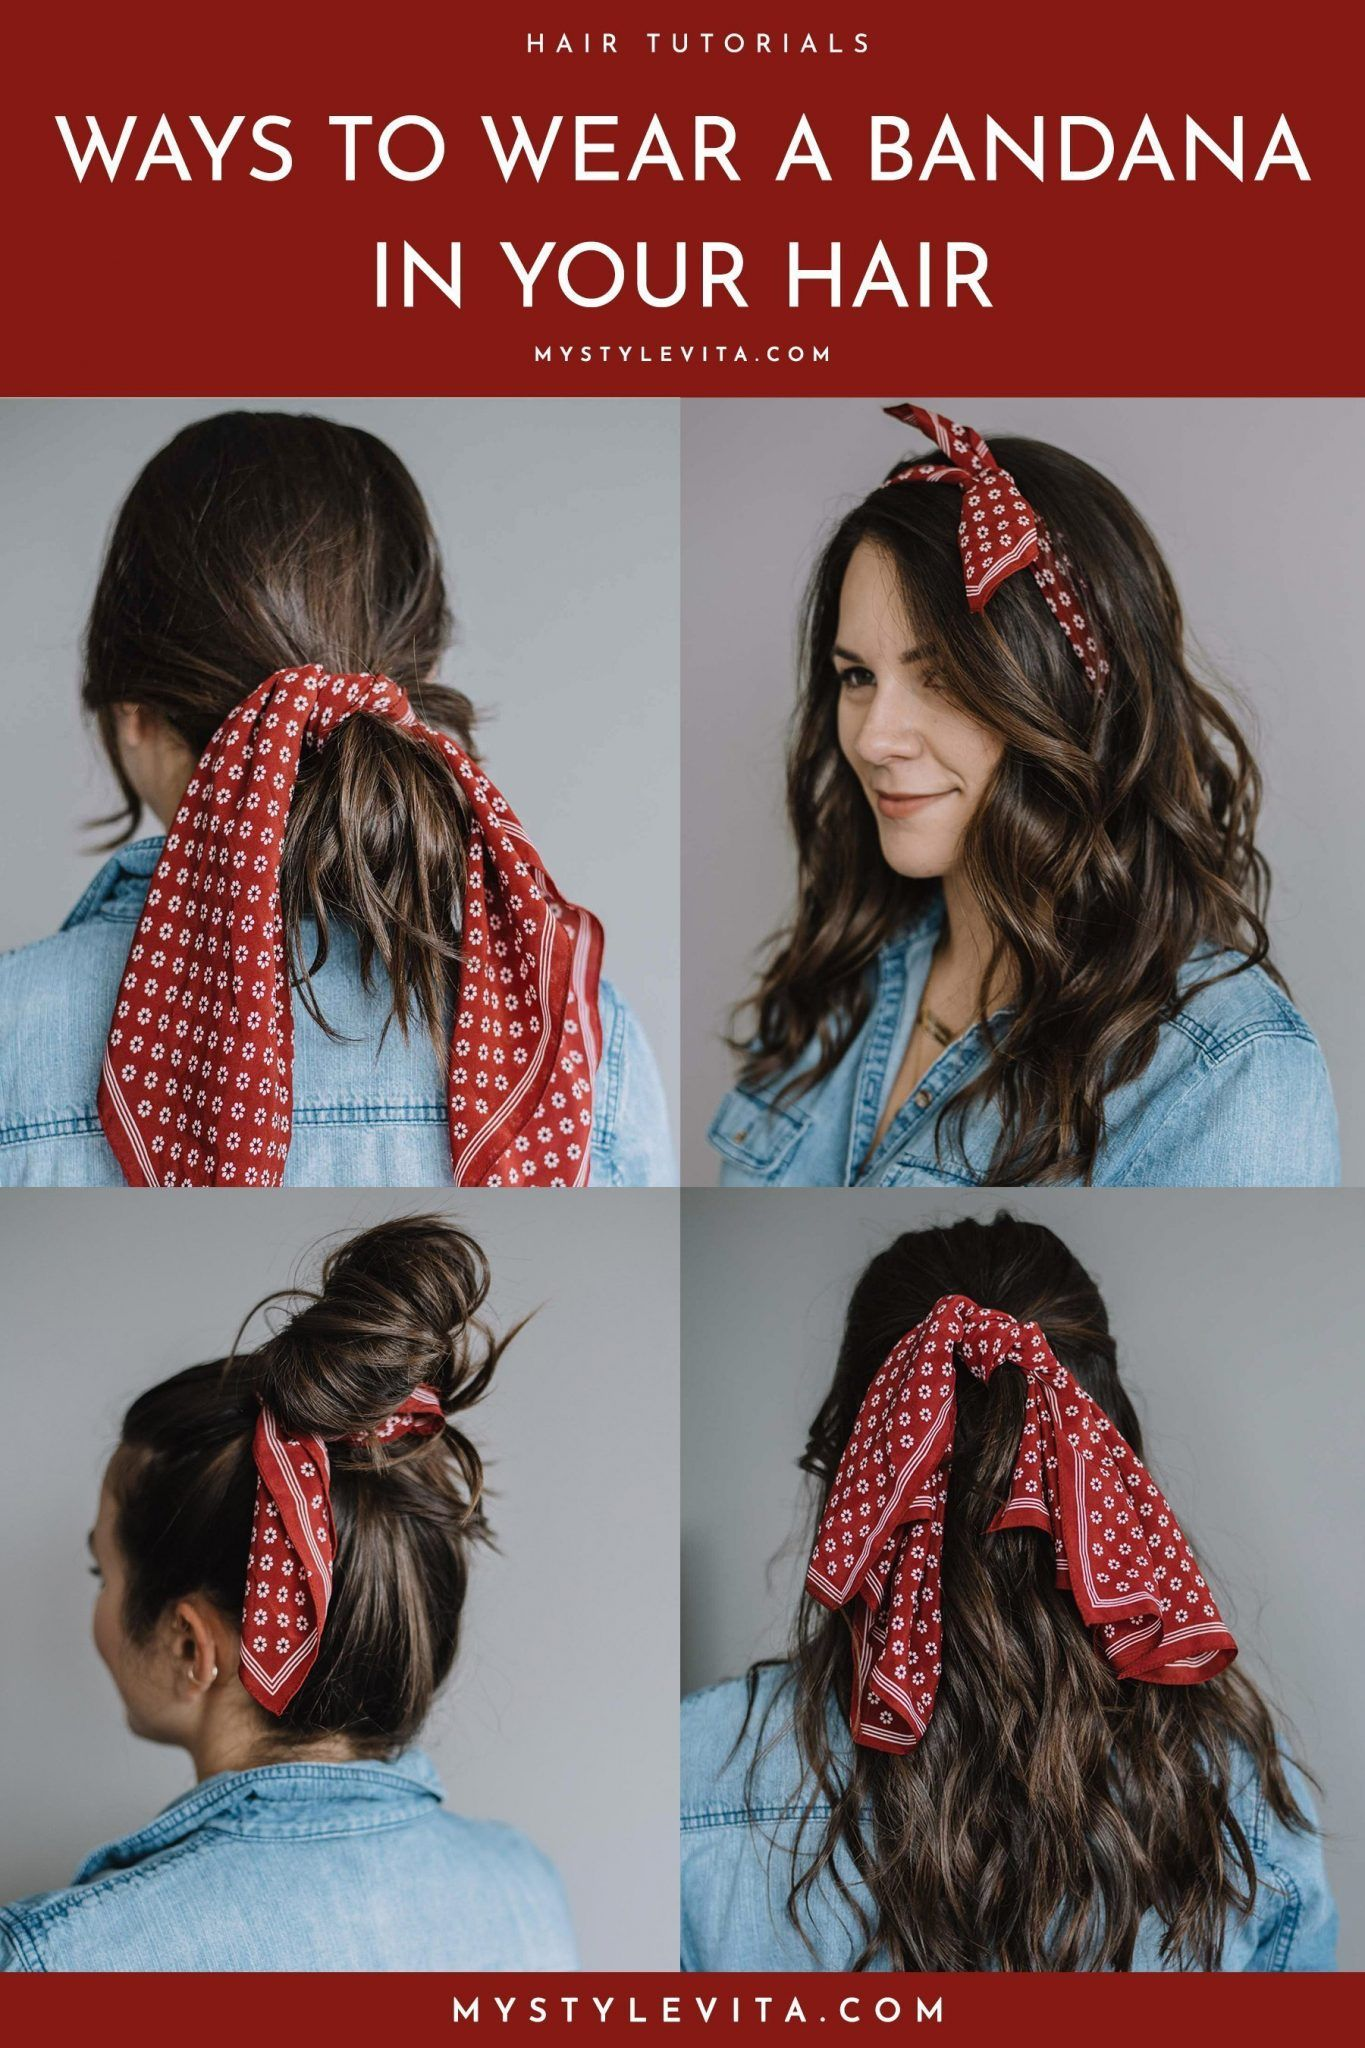 How To Wear A Bandana In Your Hair This Summer - My Style Vita